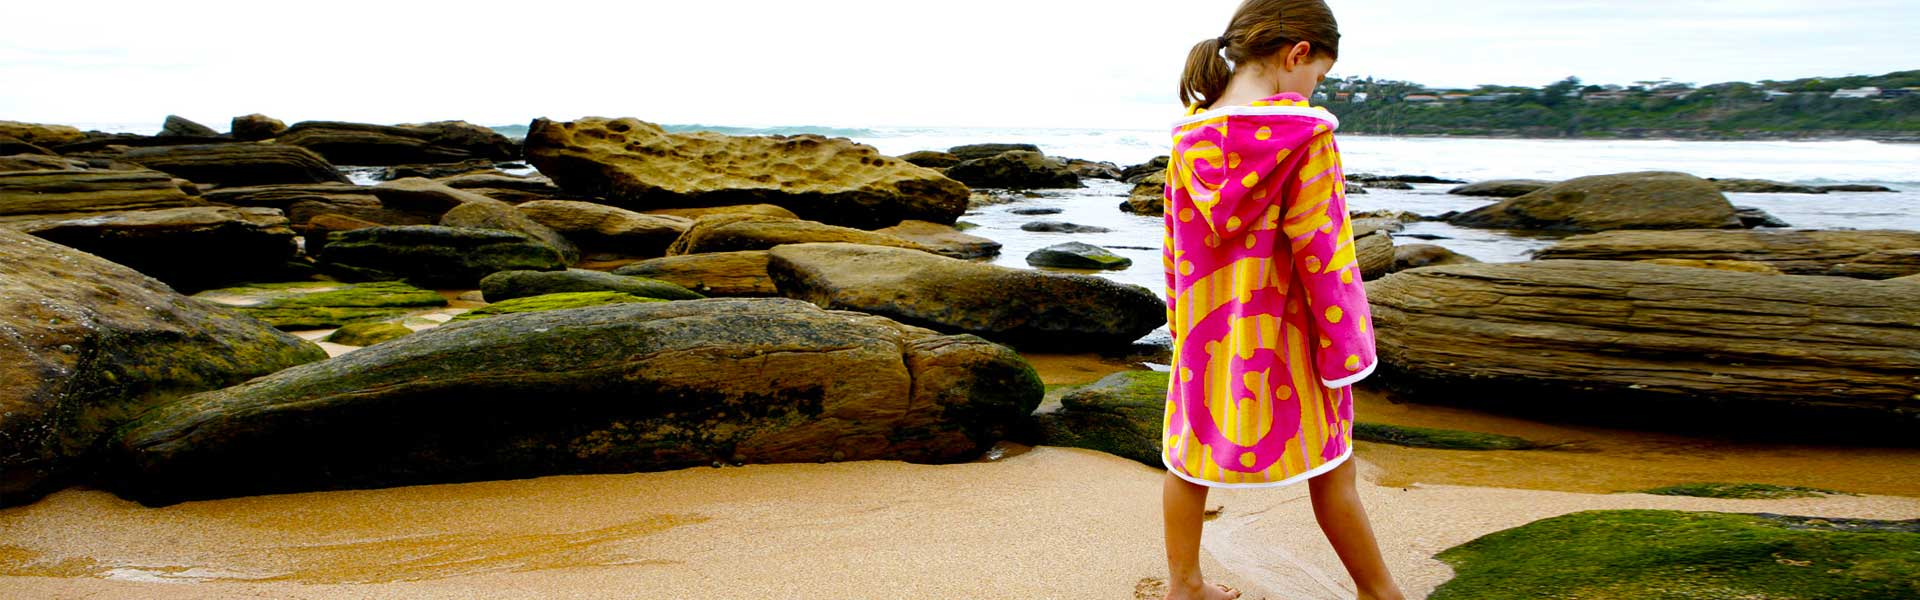 Adult and Kids Beach Robes. Why should dogs have all the fun? Humans get wet, cold and sandy too! Our beach robes wrap up the whole family and protect .